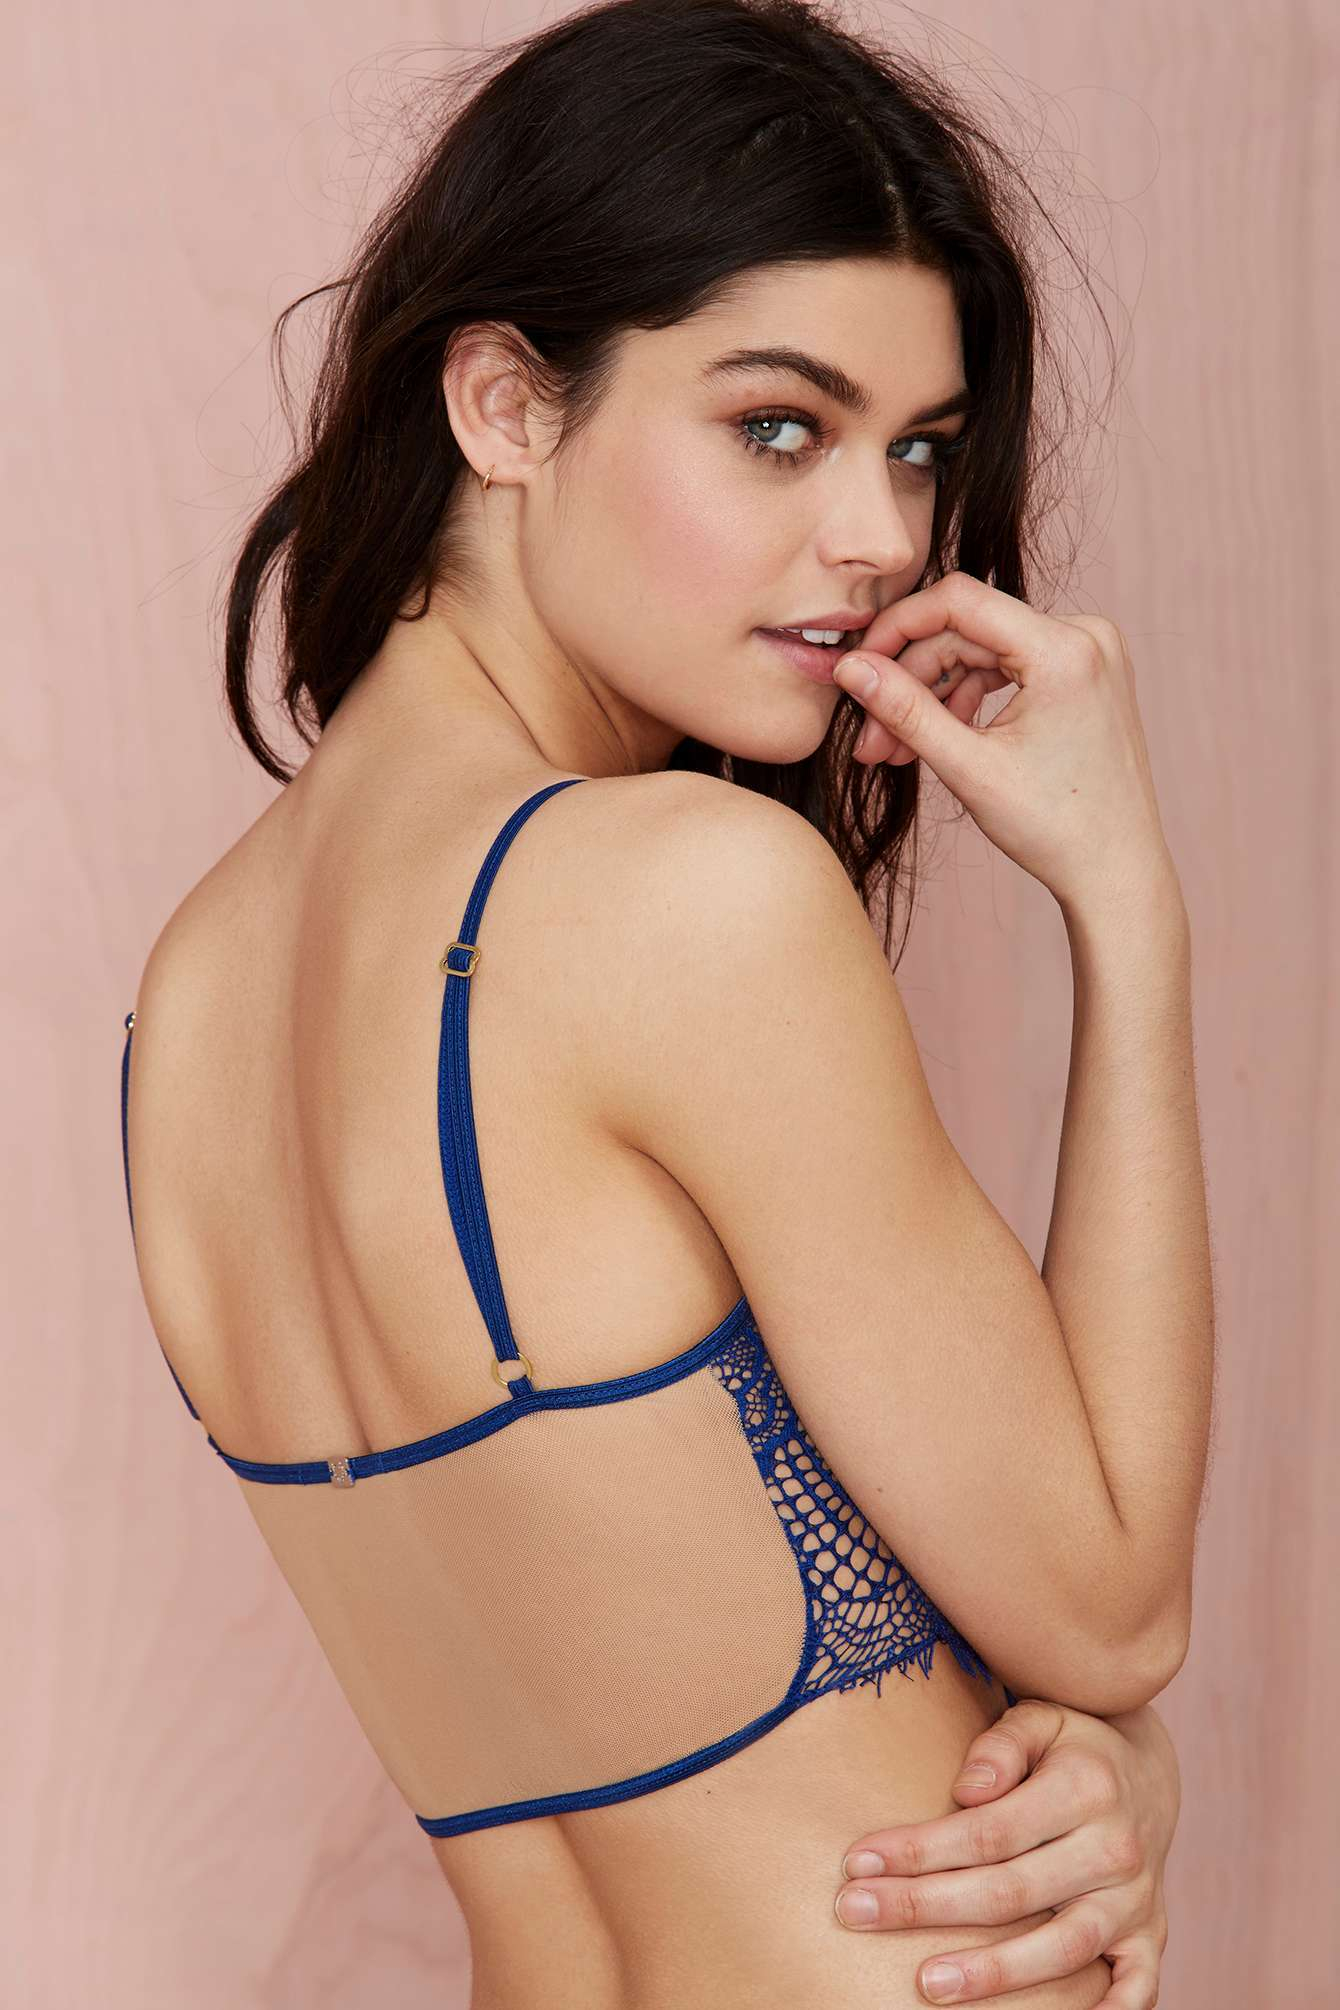 edee81a1e0beb Lyst - Nasty Gal Skivvies Bat Your Lashes Lace Bralette - Blue in Blue